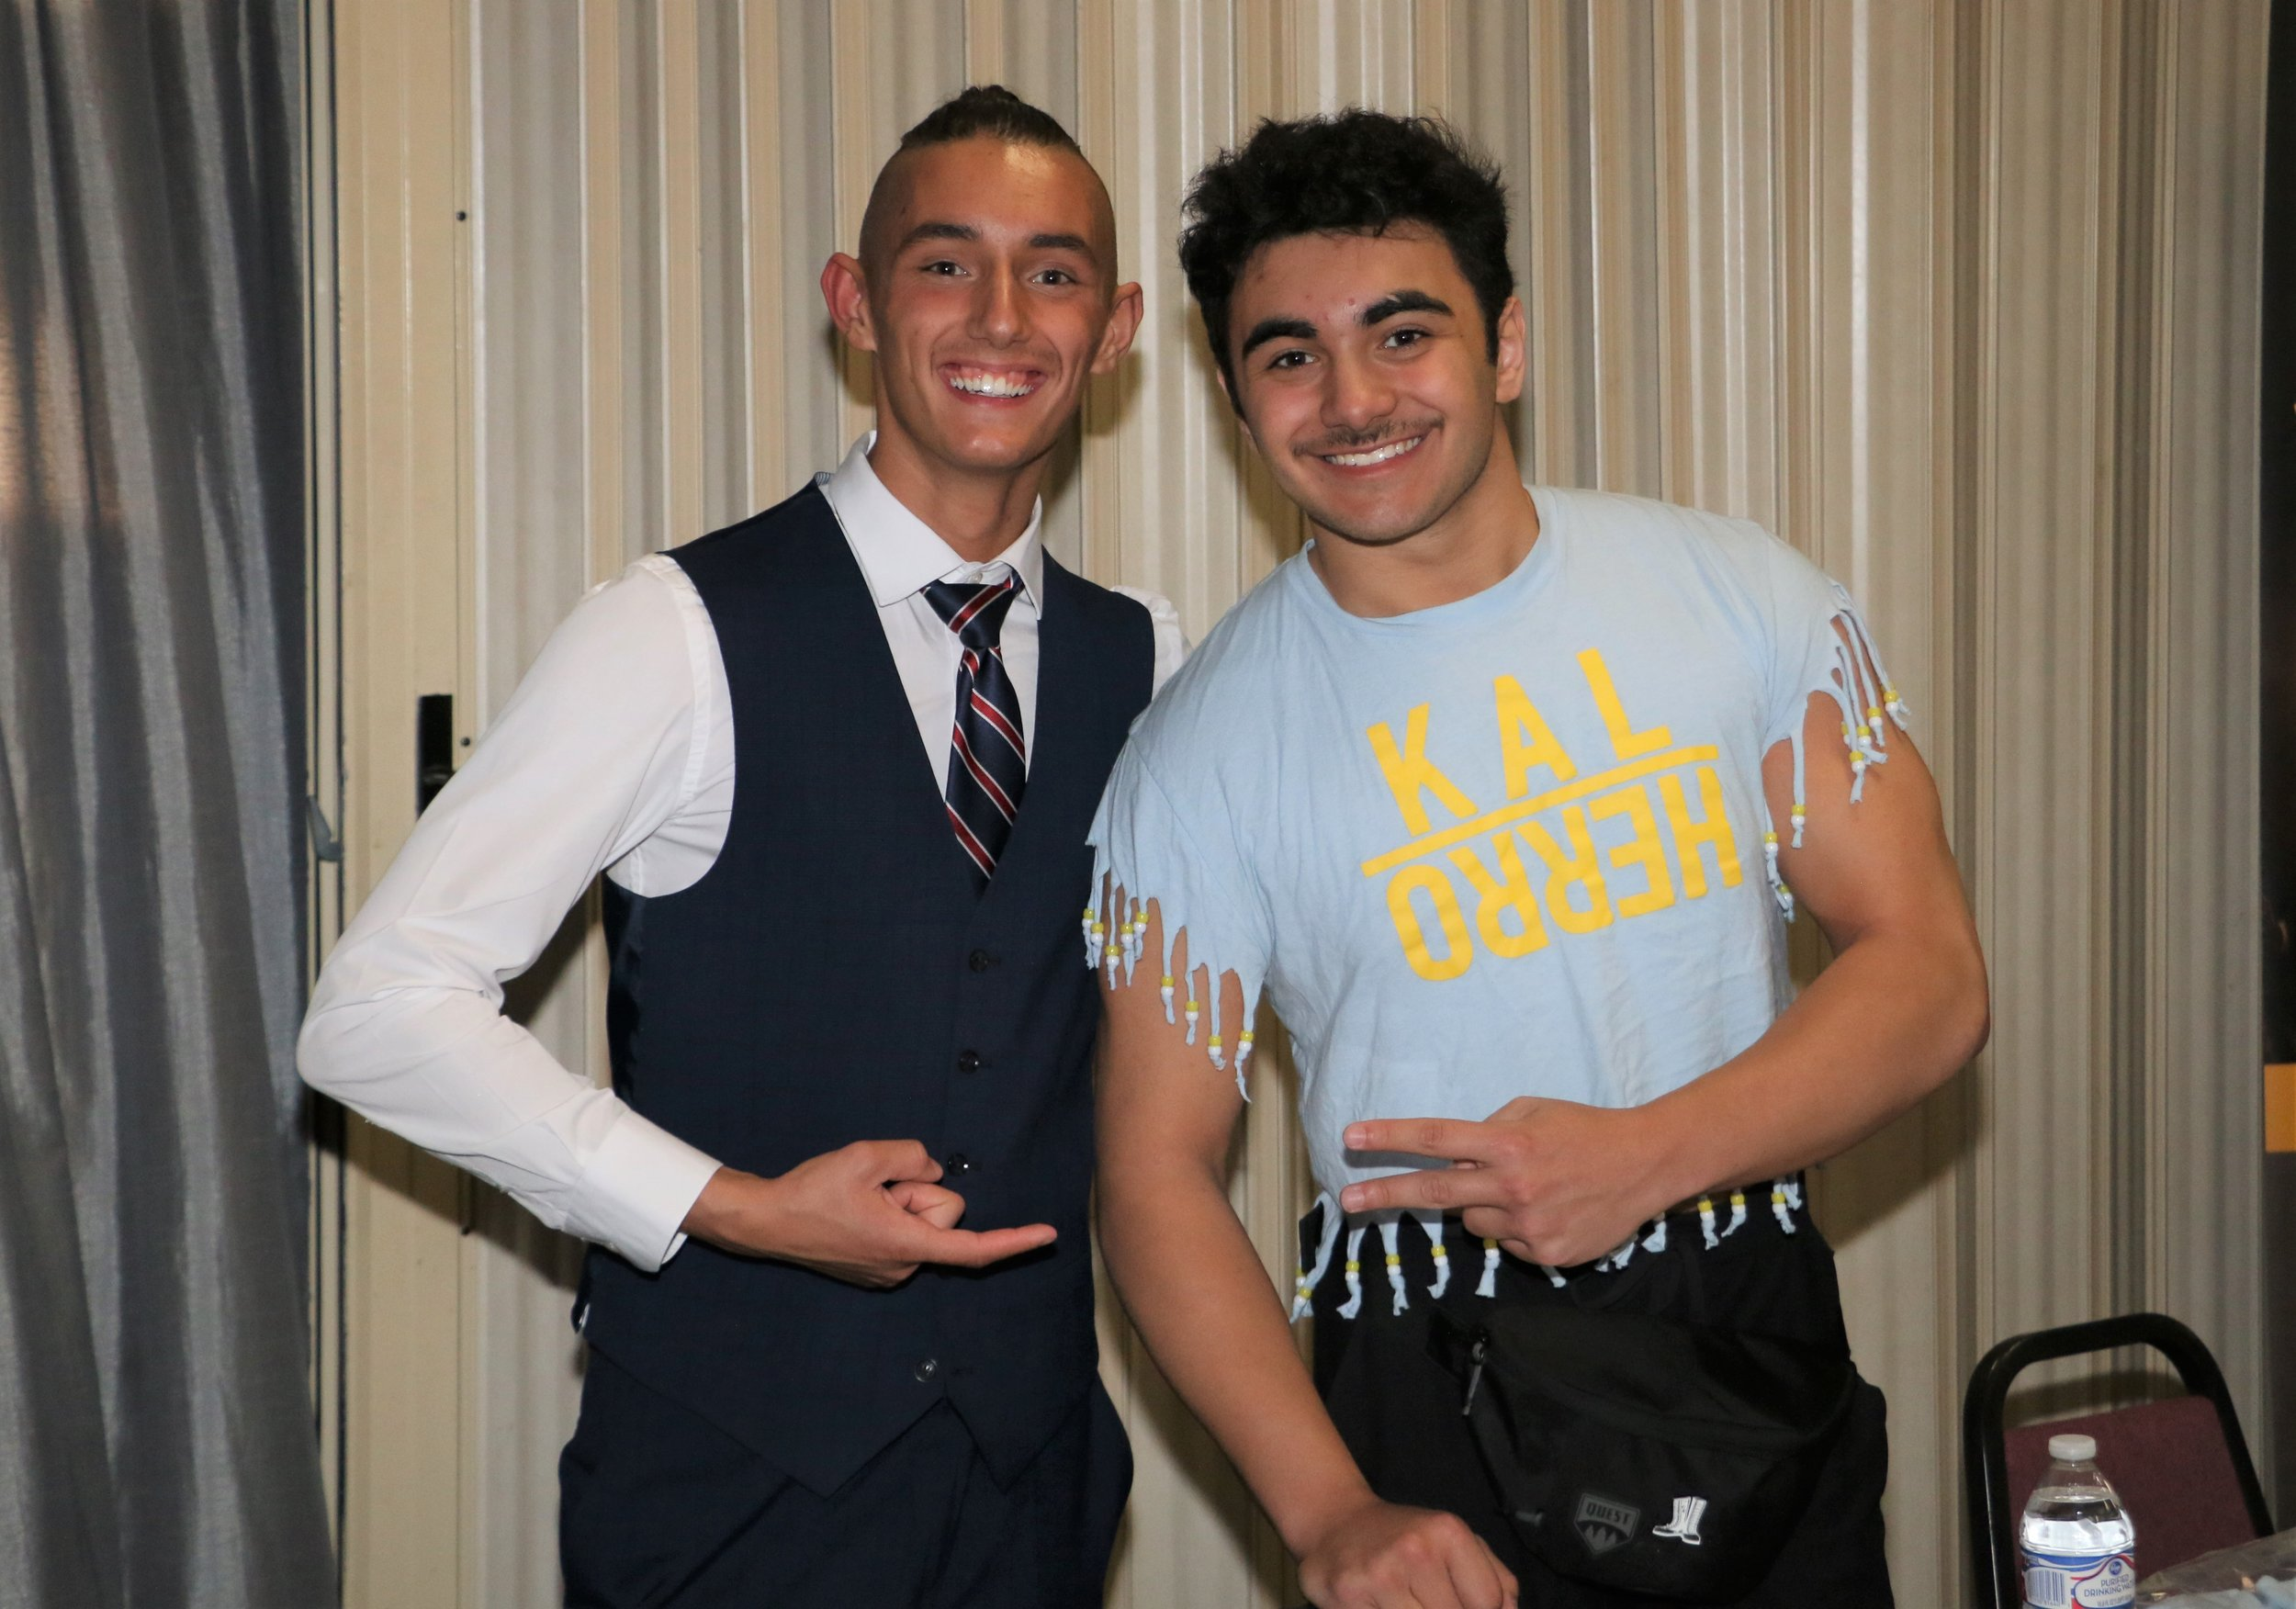 The Princes of the Universe, Jordan Kross, left, and Kal Herro, during the VIP Meet and Greet before the show.